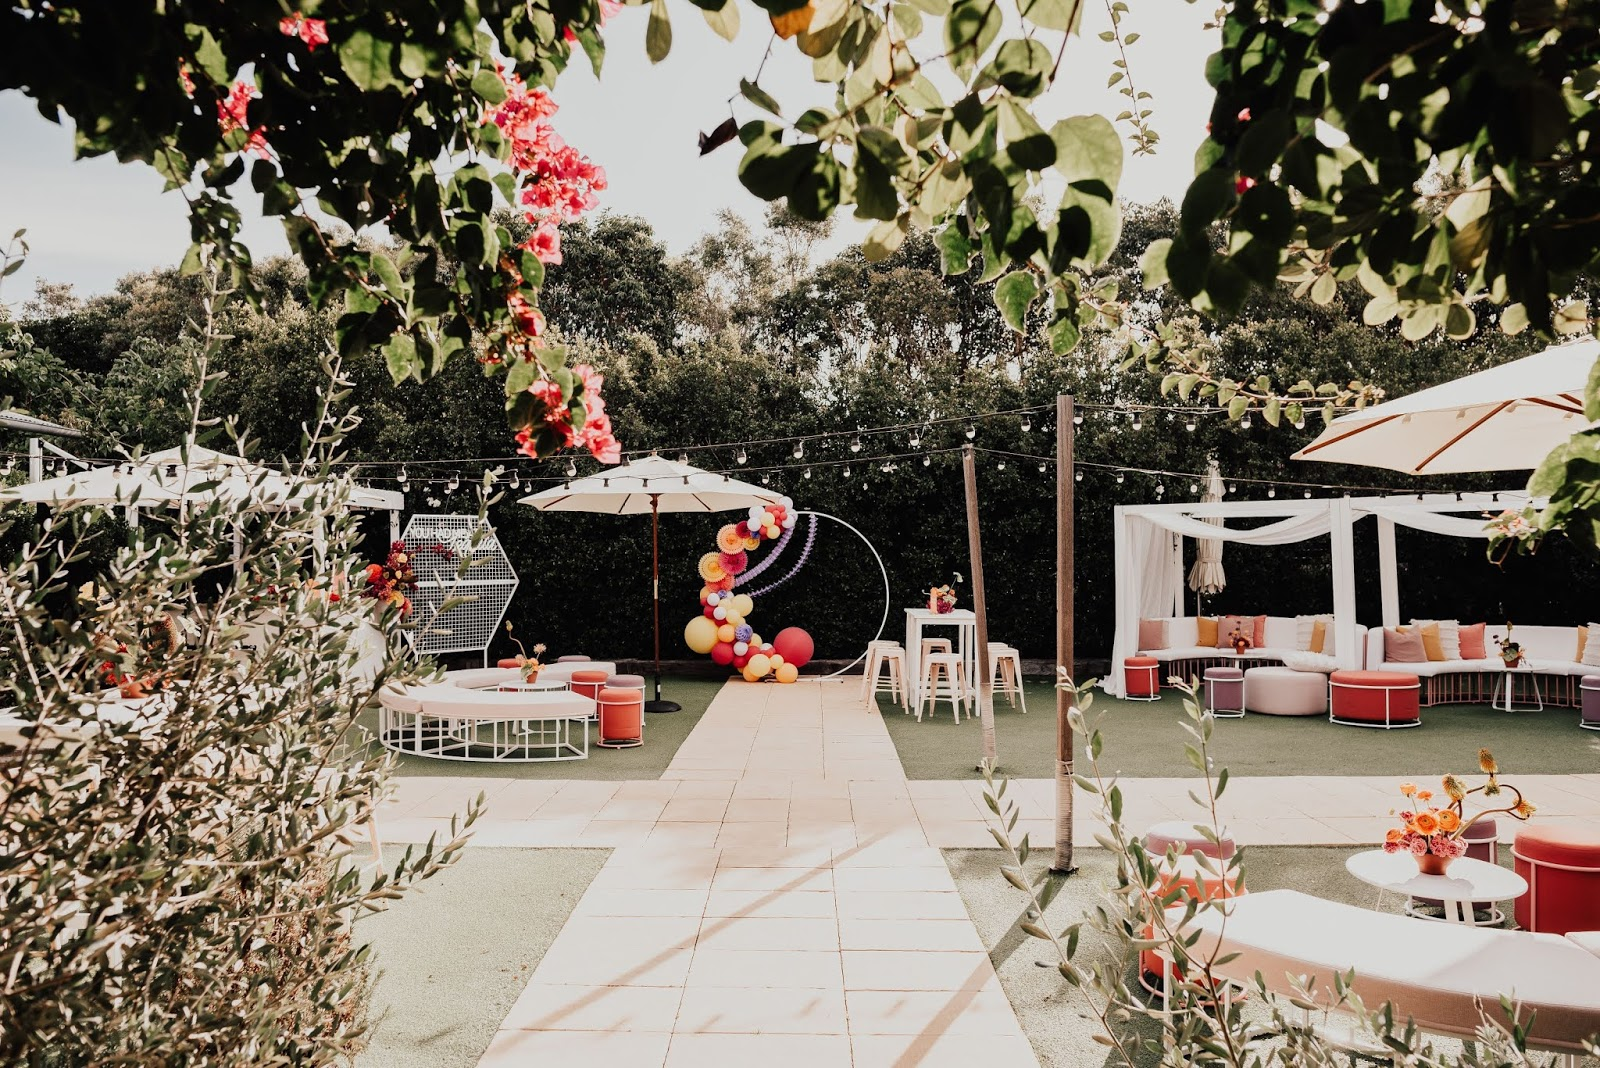 STYLED SHOOT: MEXICANA GARDEN FIESTA WITH RAD HENS PARTY VIBES AT OSTERIA WEDDINGS CASUARINA NSW